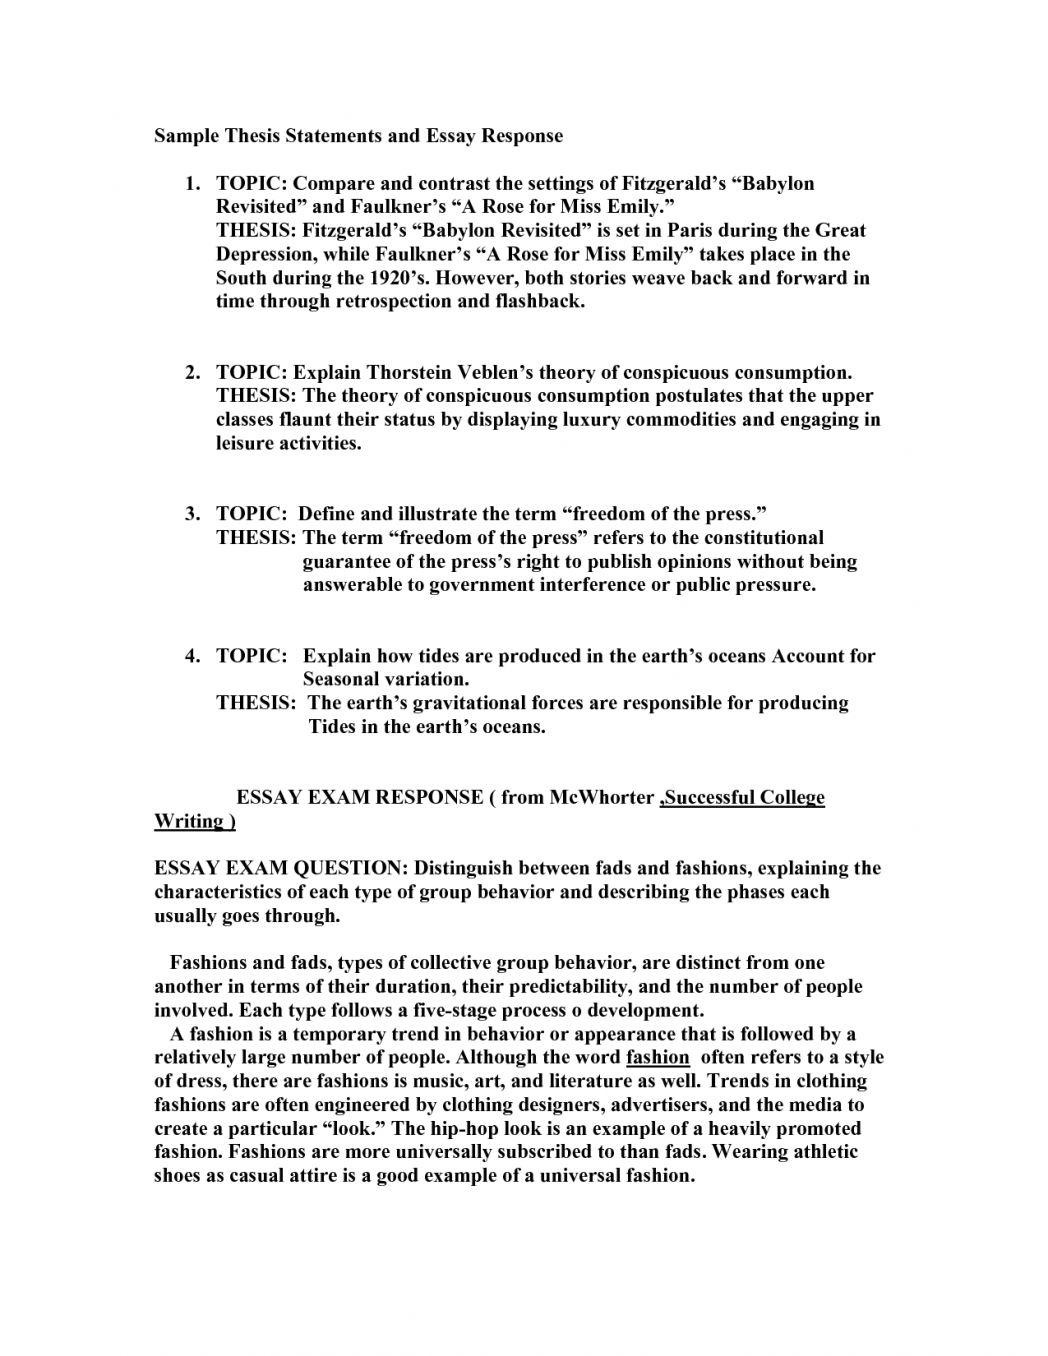 011 How To Write Thesis For An Essay Example Statement Of In About Yourself 6na1p Argumentative Step By Expository High Schoolpt Informative Analysis Unique A Exploratory Evaluation Good Analytical Full